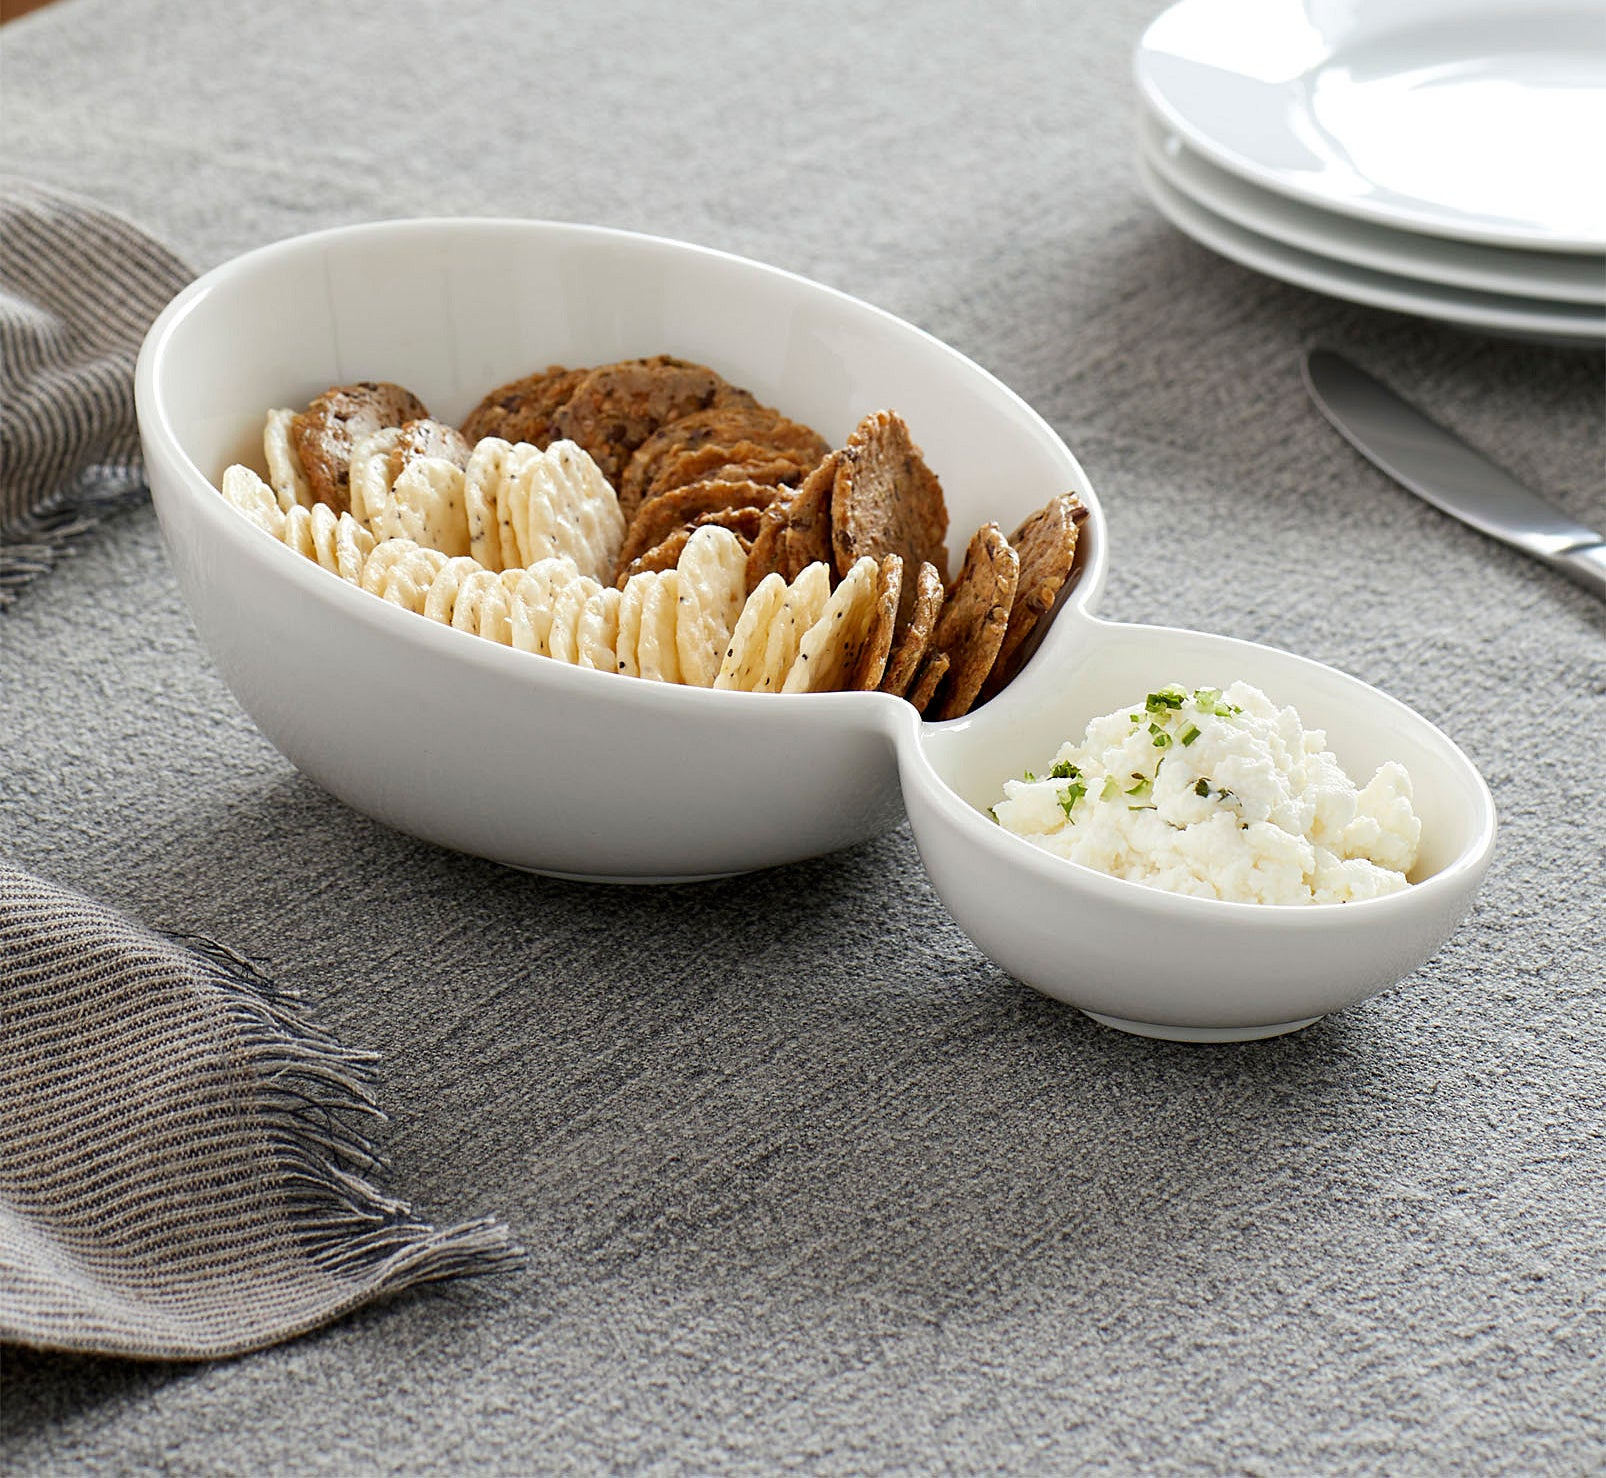 A ceramic bowl split into a large section with chips and a small section with dip